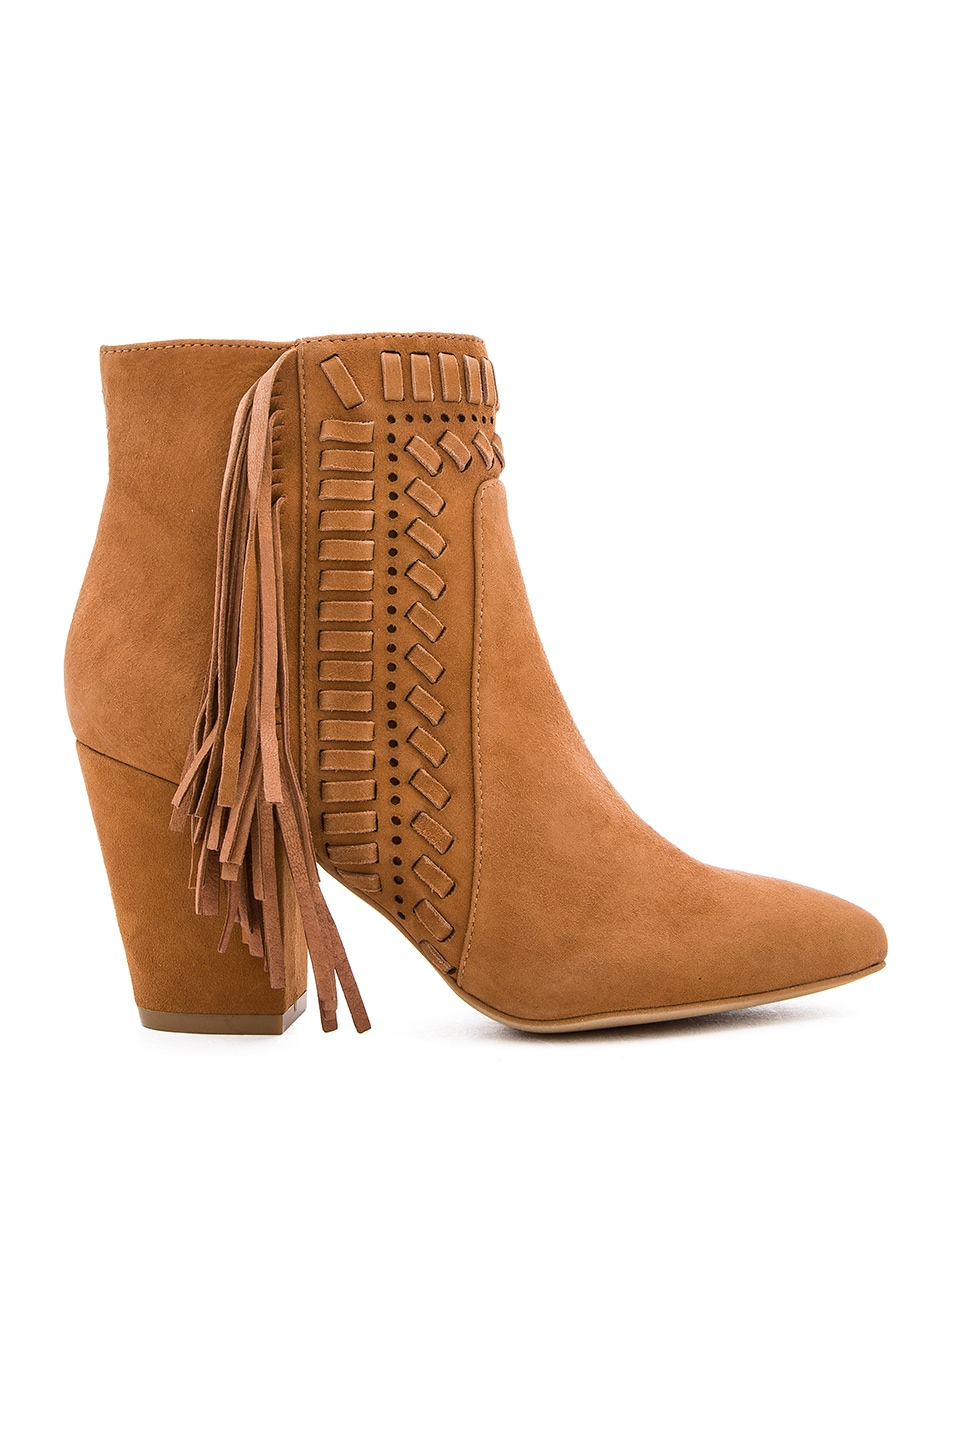 Rebecca Minkoff Ilan Bootie in Butterscotch Kid Suede